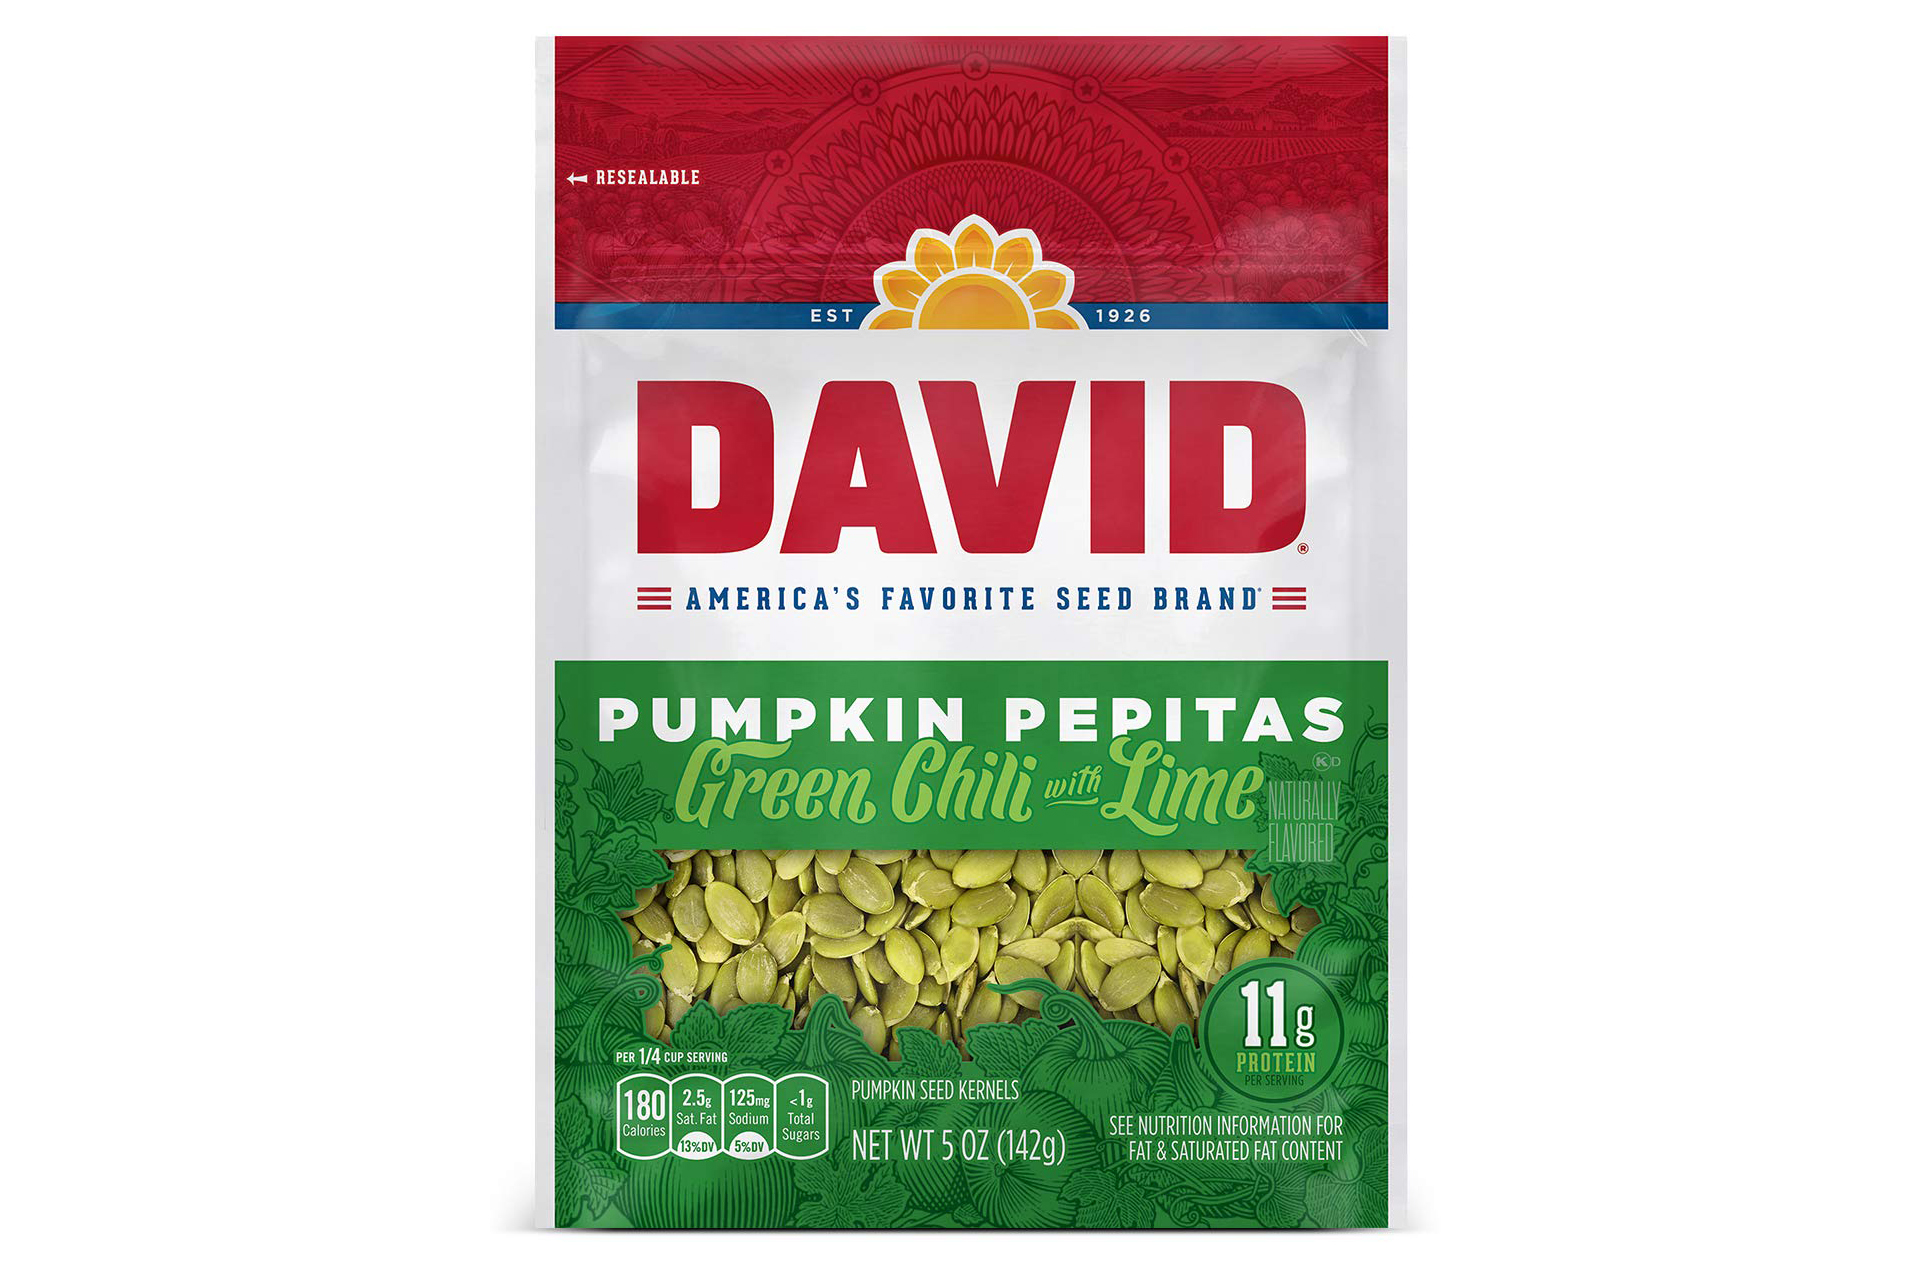 a bag of DAVID SEEDS Green Chili with Lime Pumpkin Pepitas Seeds on a white background